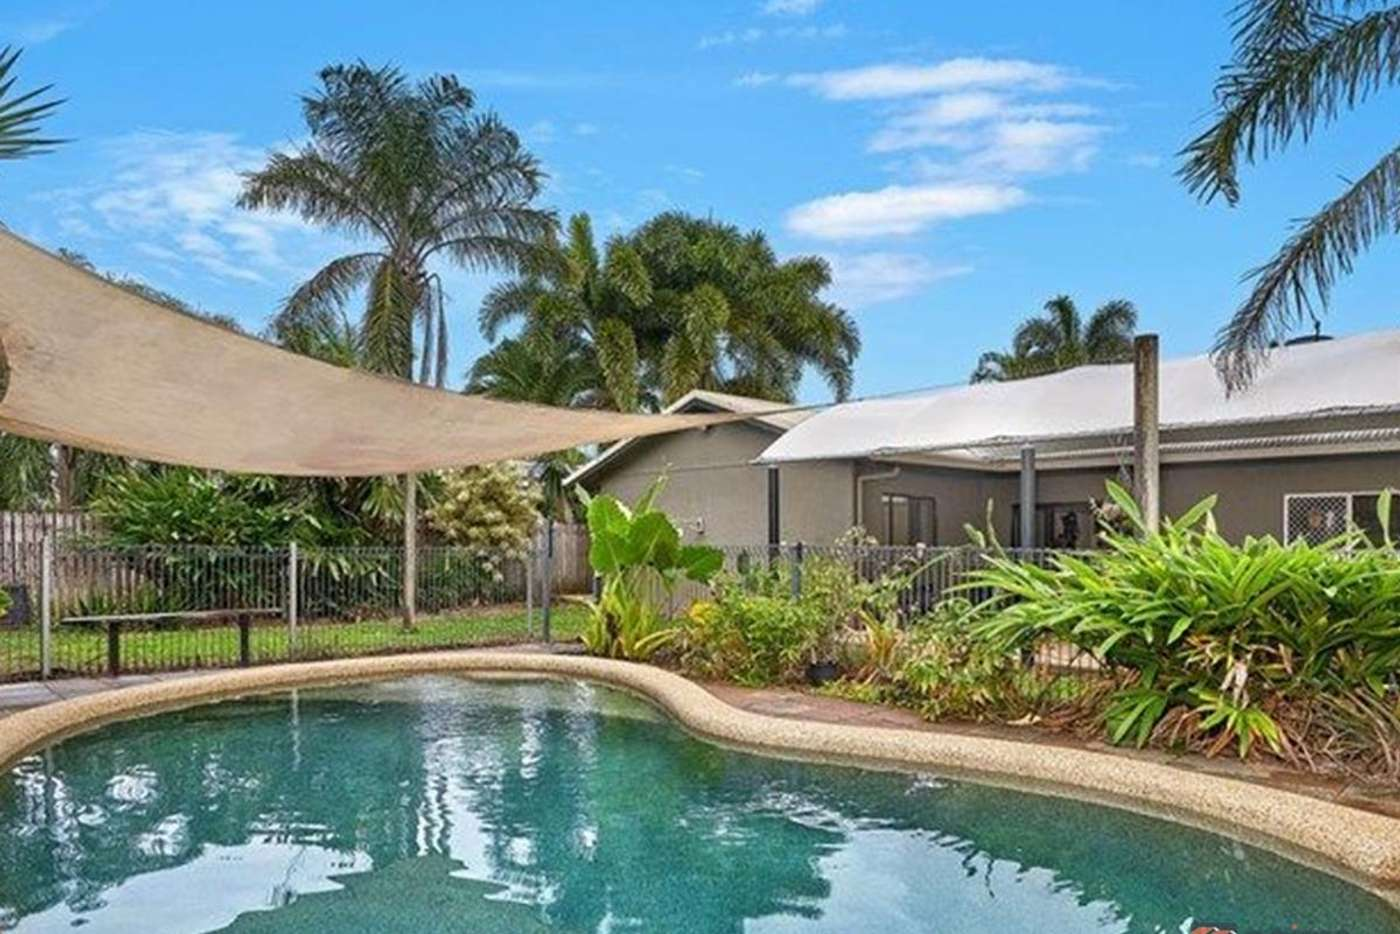 Main view of Homely house listing, 9 Caneland Court, Redlynch QLD 4870